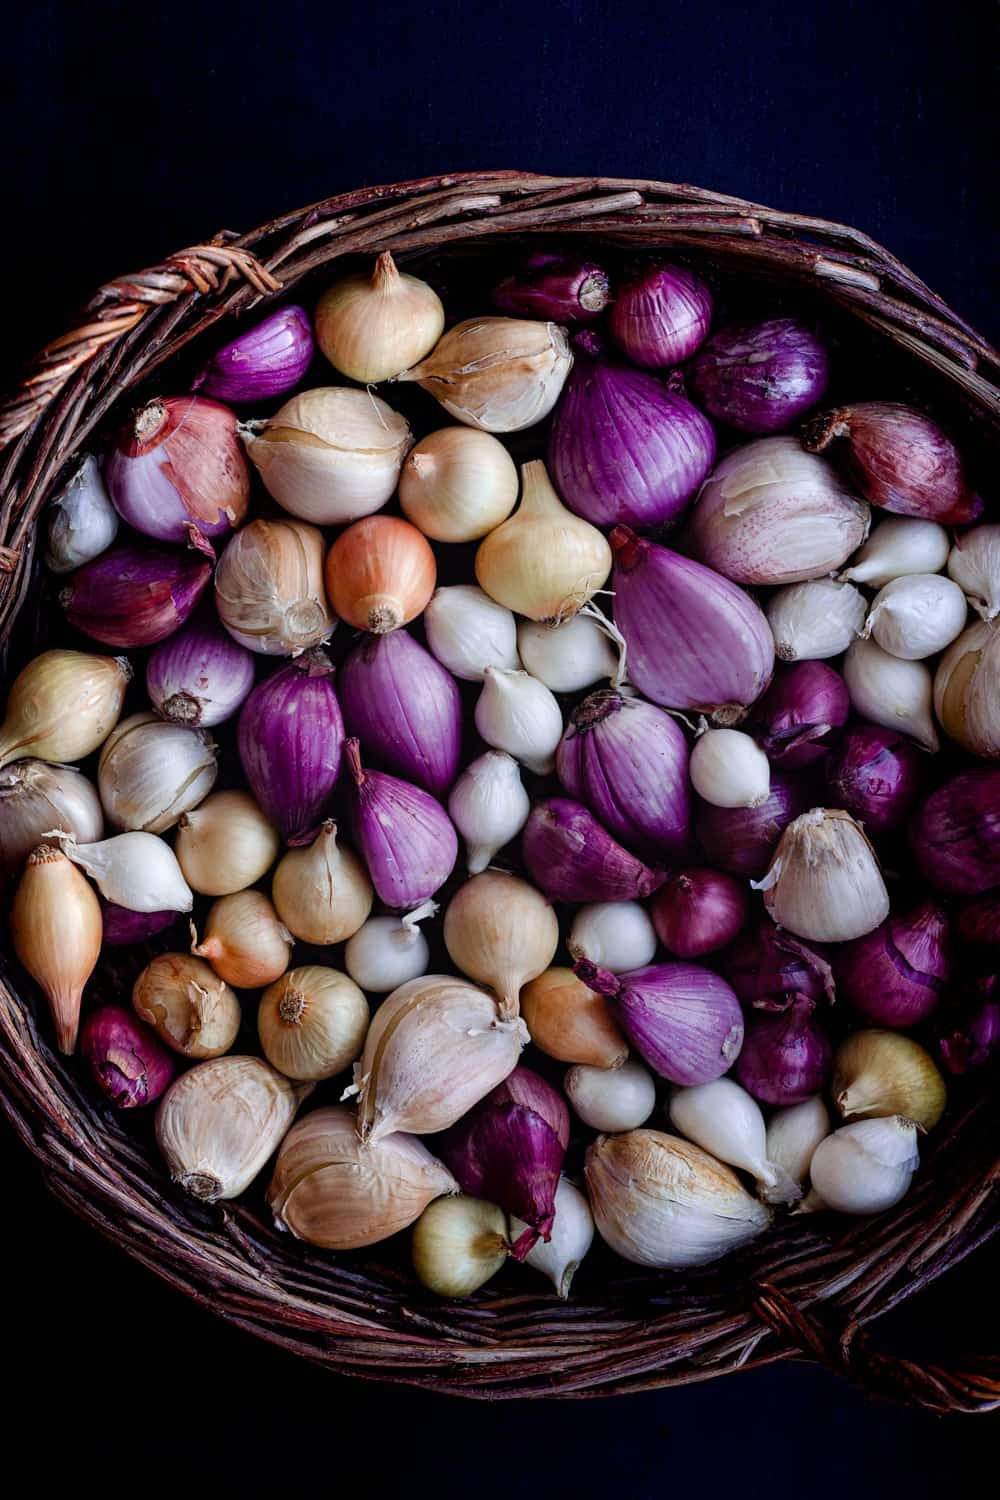 Raw allium ingredient shot; lots of different colors of shallots, onions and garlic are in a woven basket; overhead shot on a black background.